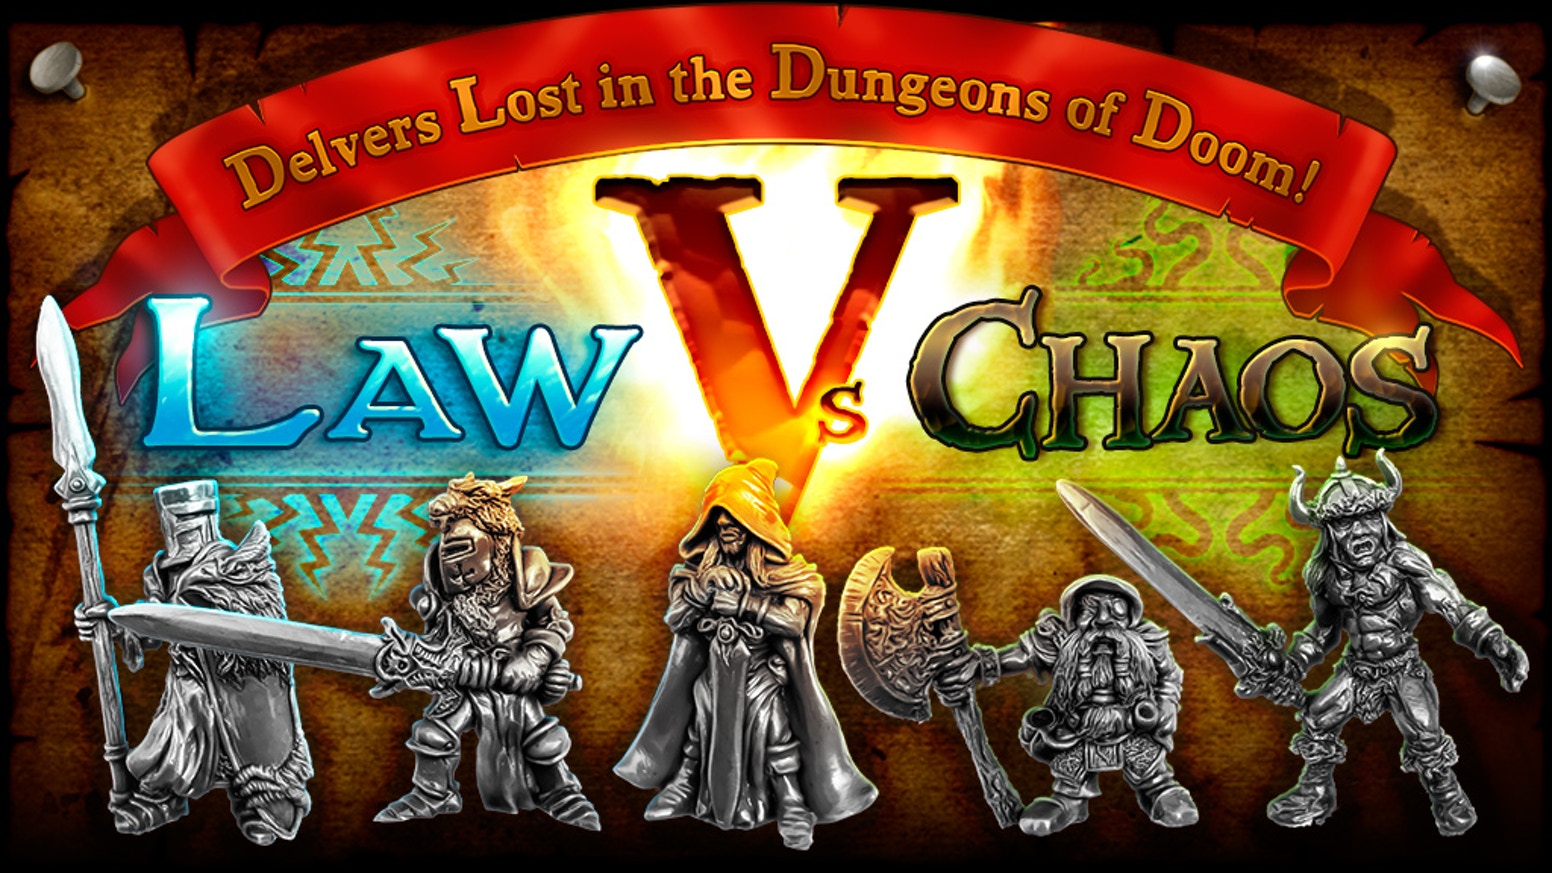 Delvers Lost in the Dungeons of Doom 5: Law Vs Chaos. Heroic miniatures sculpted by hand and cast in metal for RPGs and Tabletop Games.